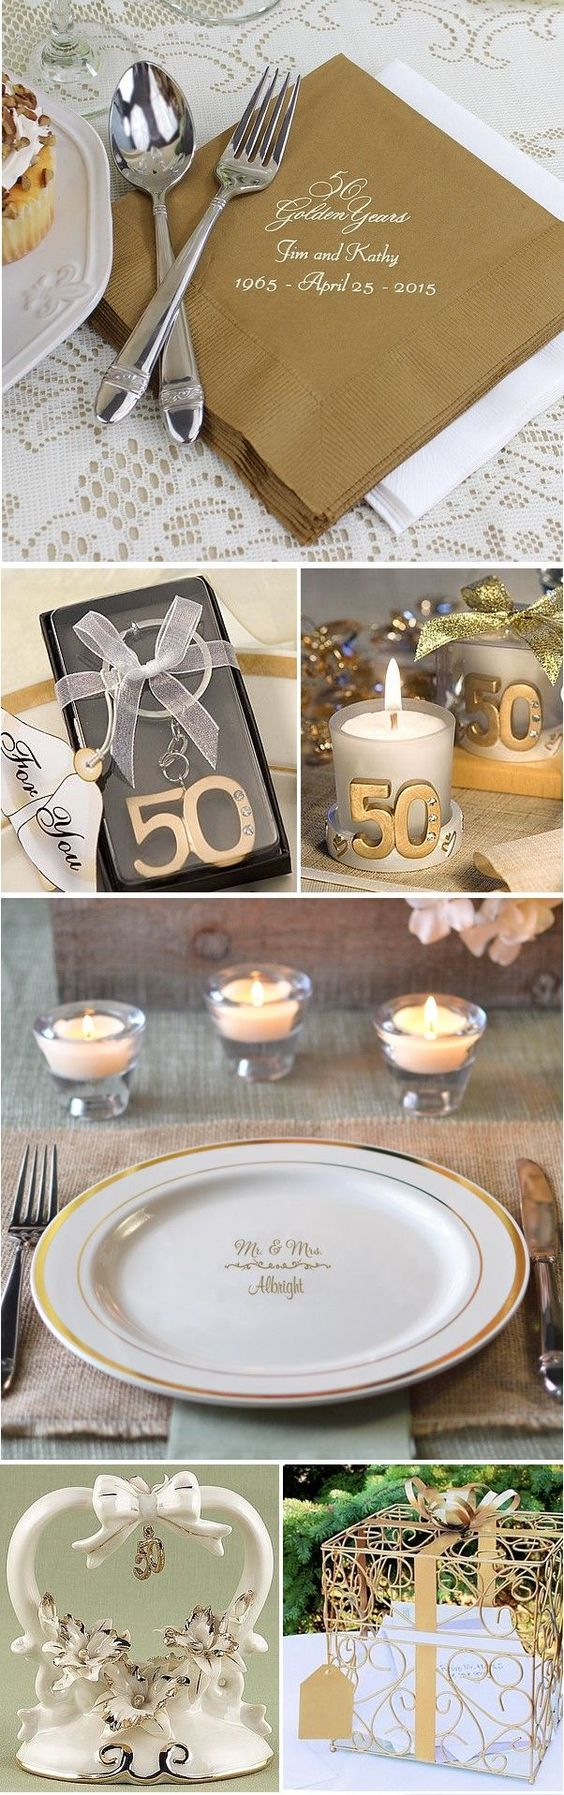 Wedding Anniversary Gift Ideas For Dad : ... wedding anniversary party to celebrate mom and dads golden